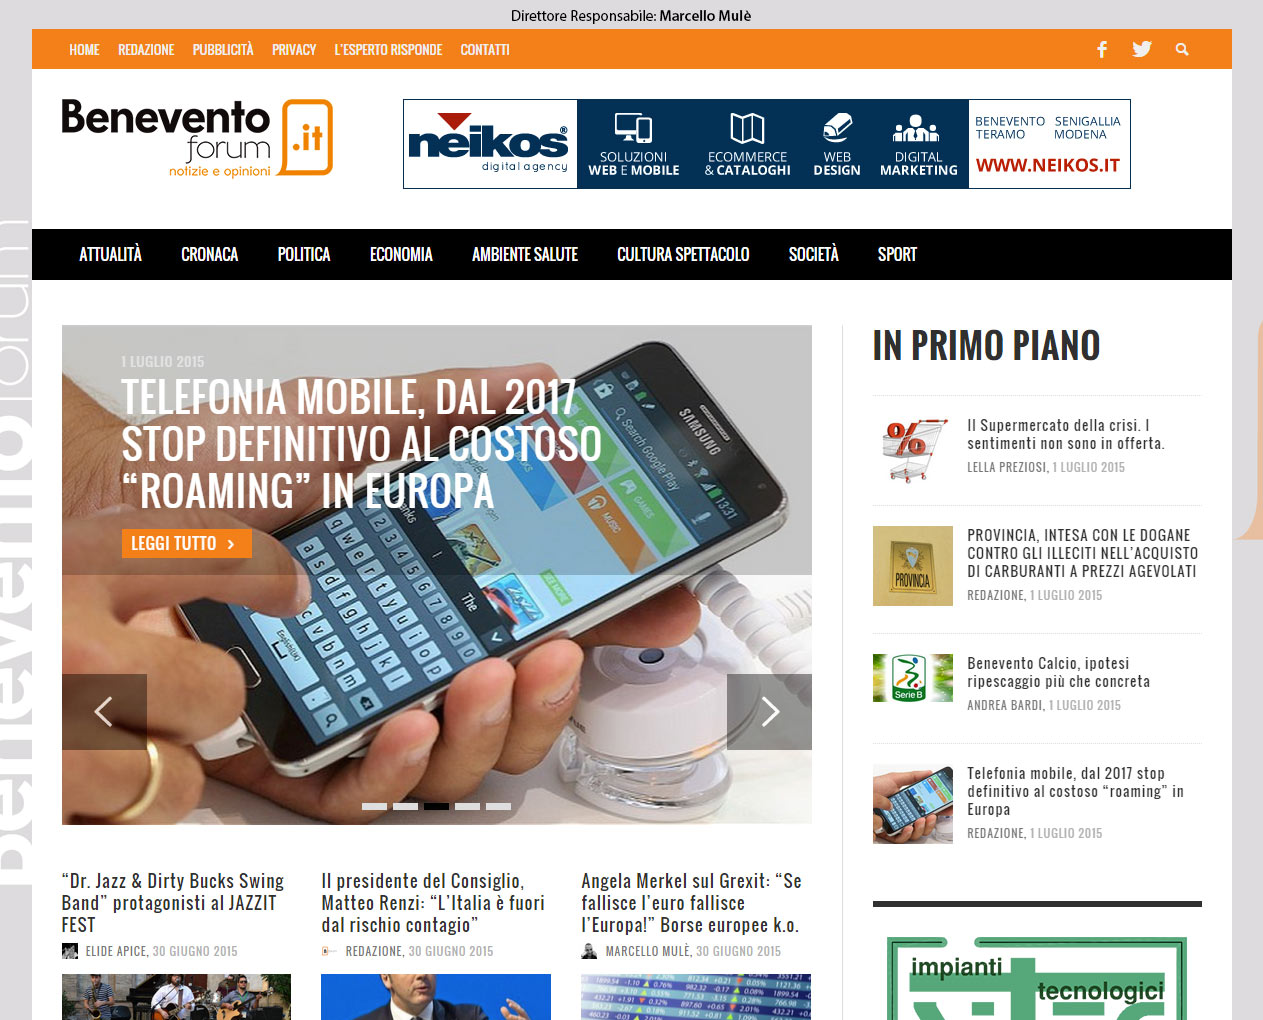 Beneventoforum.it, quotidiano online